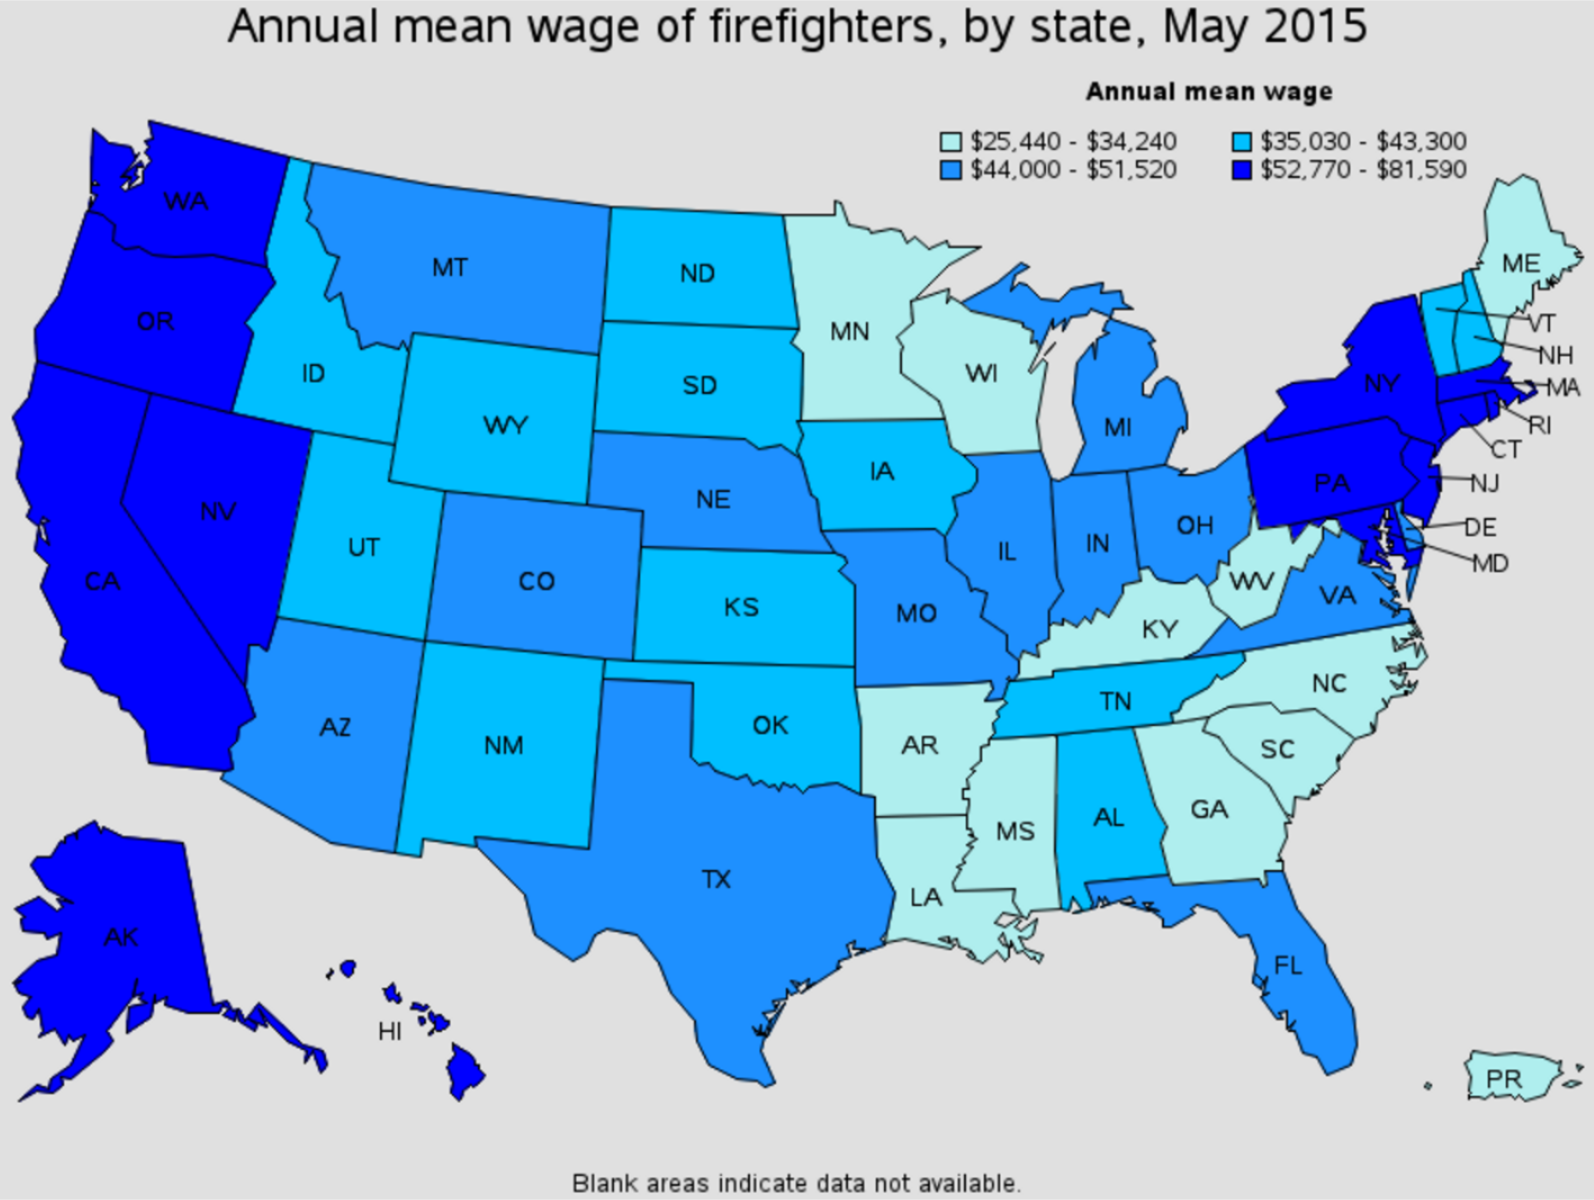 firefighter average salary by state Salida California